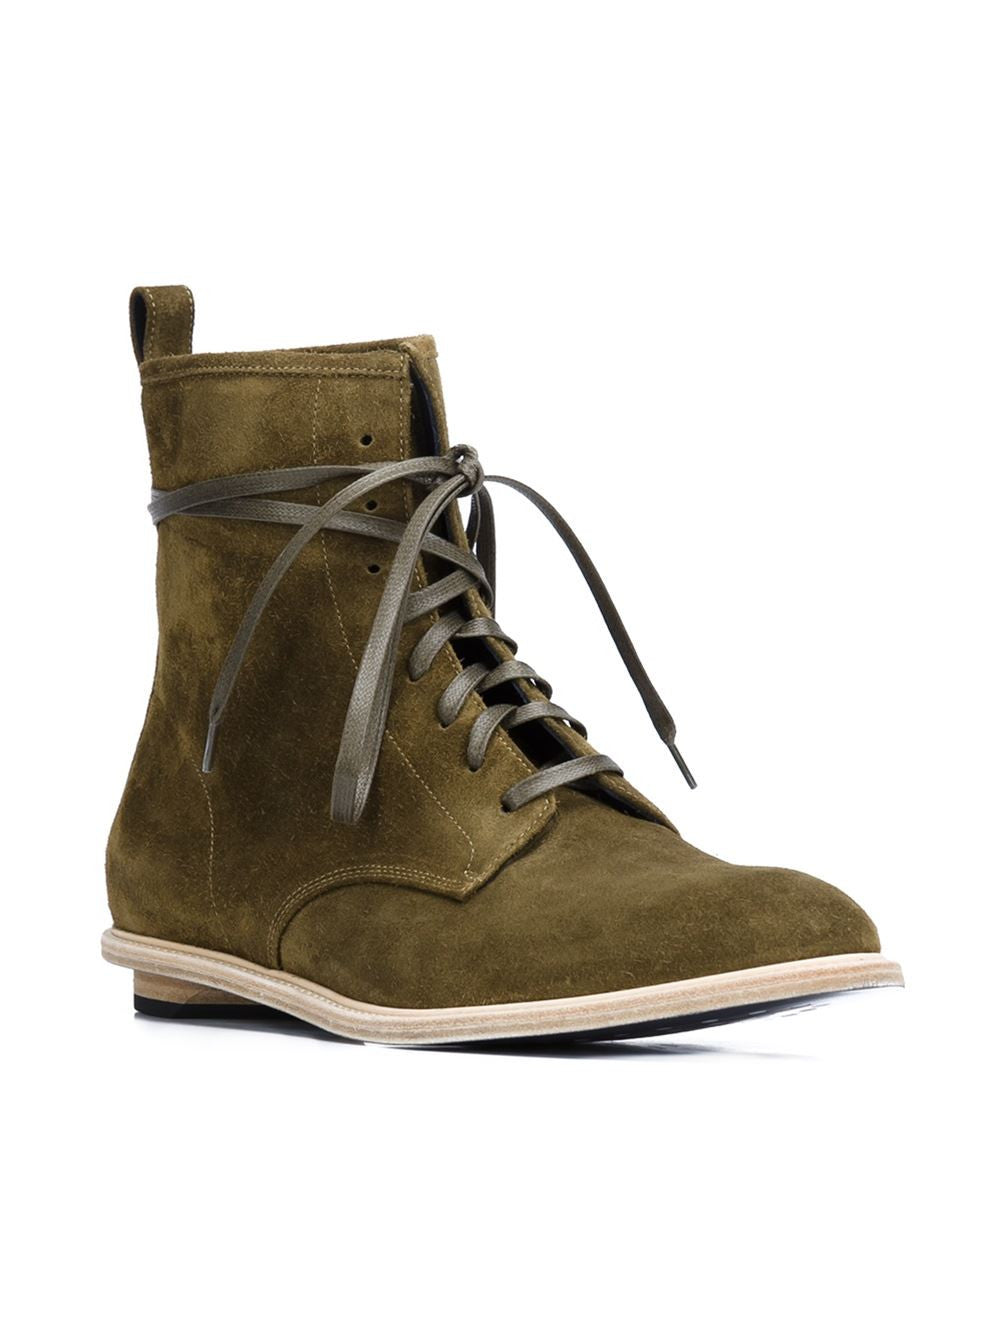 Reverse Leather 'Rebel' Boot | VSRO003 REBEL HIGH